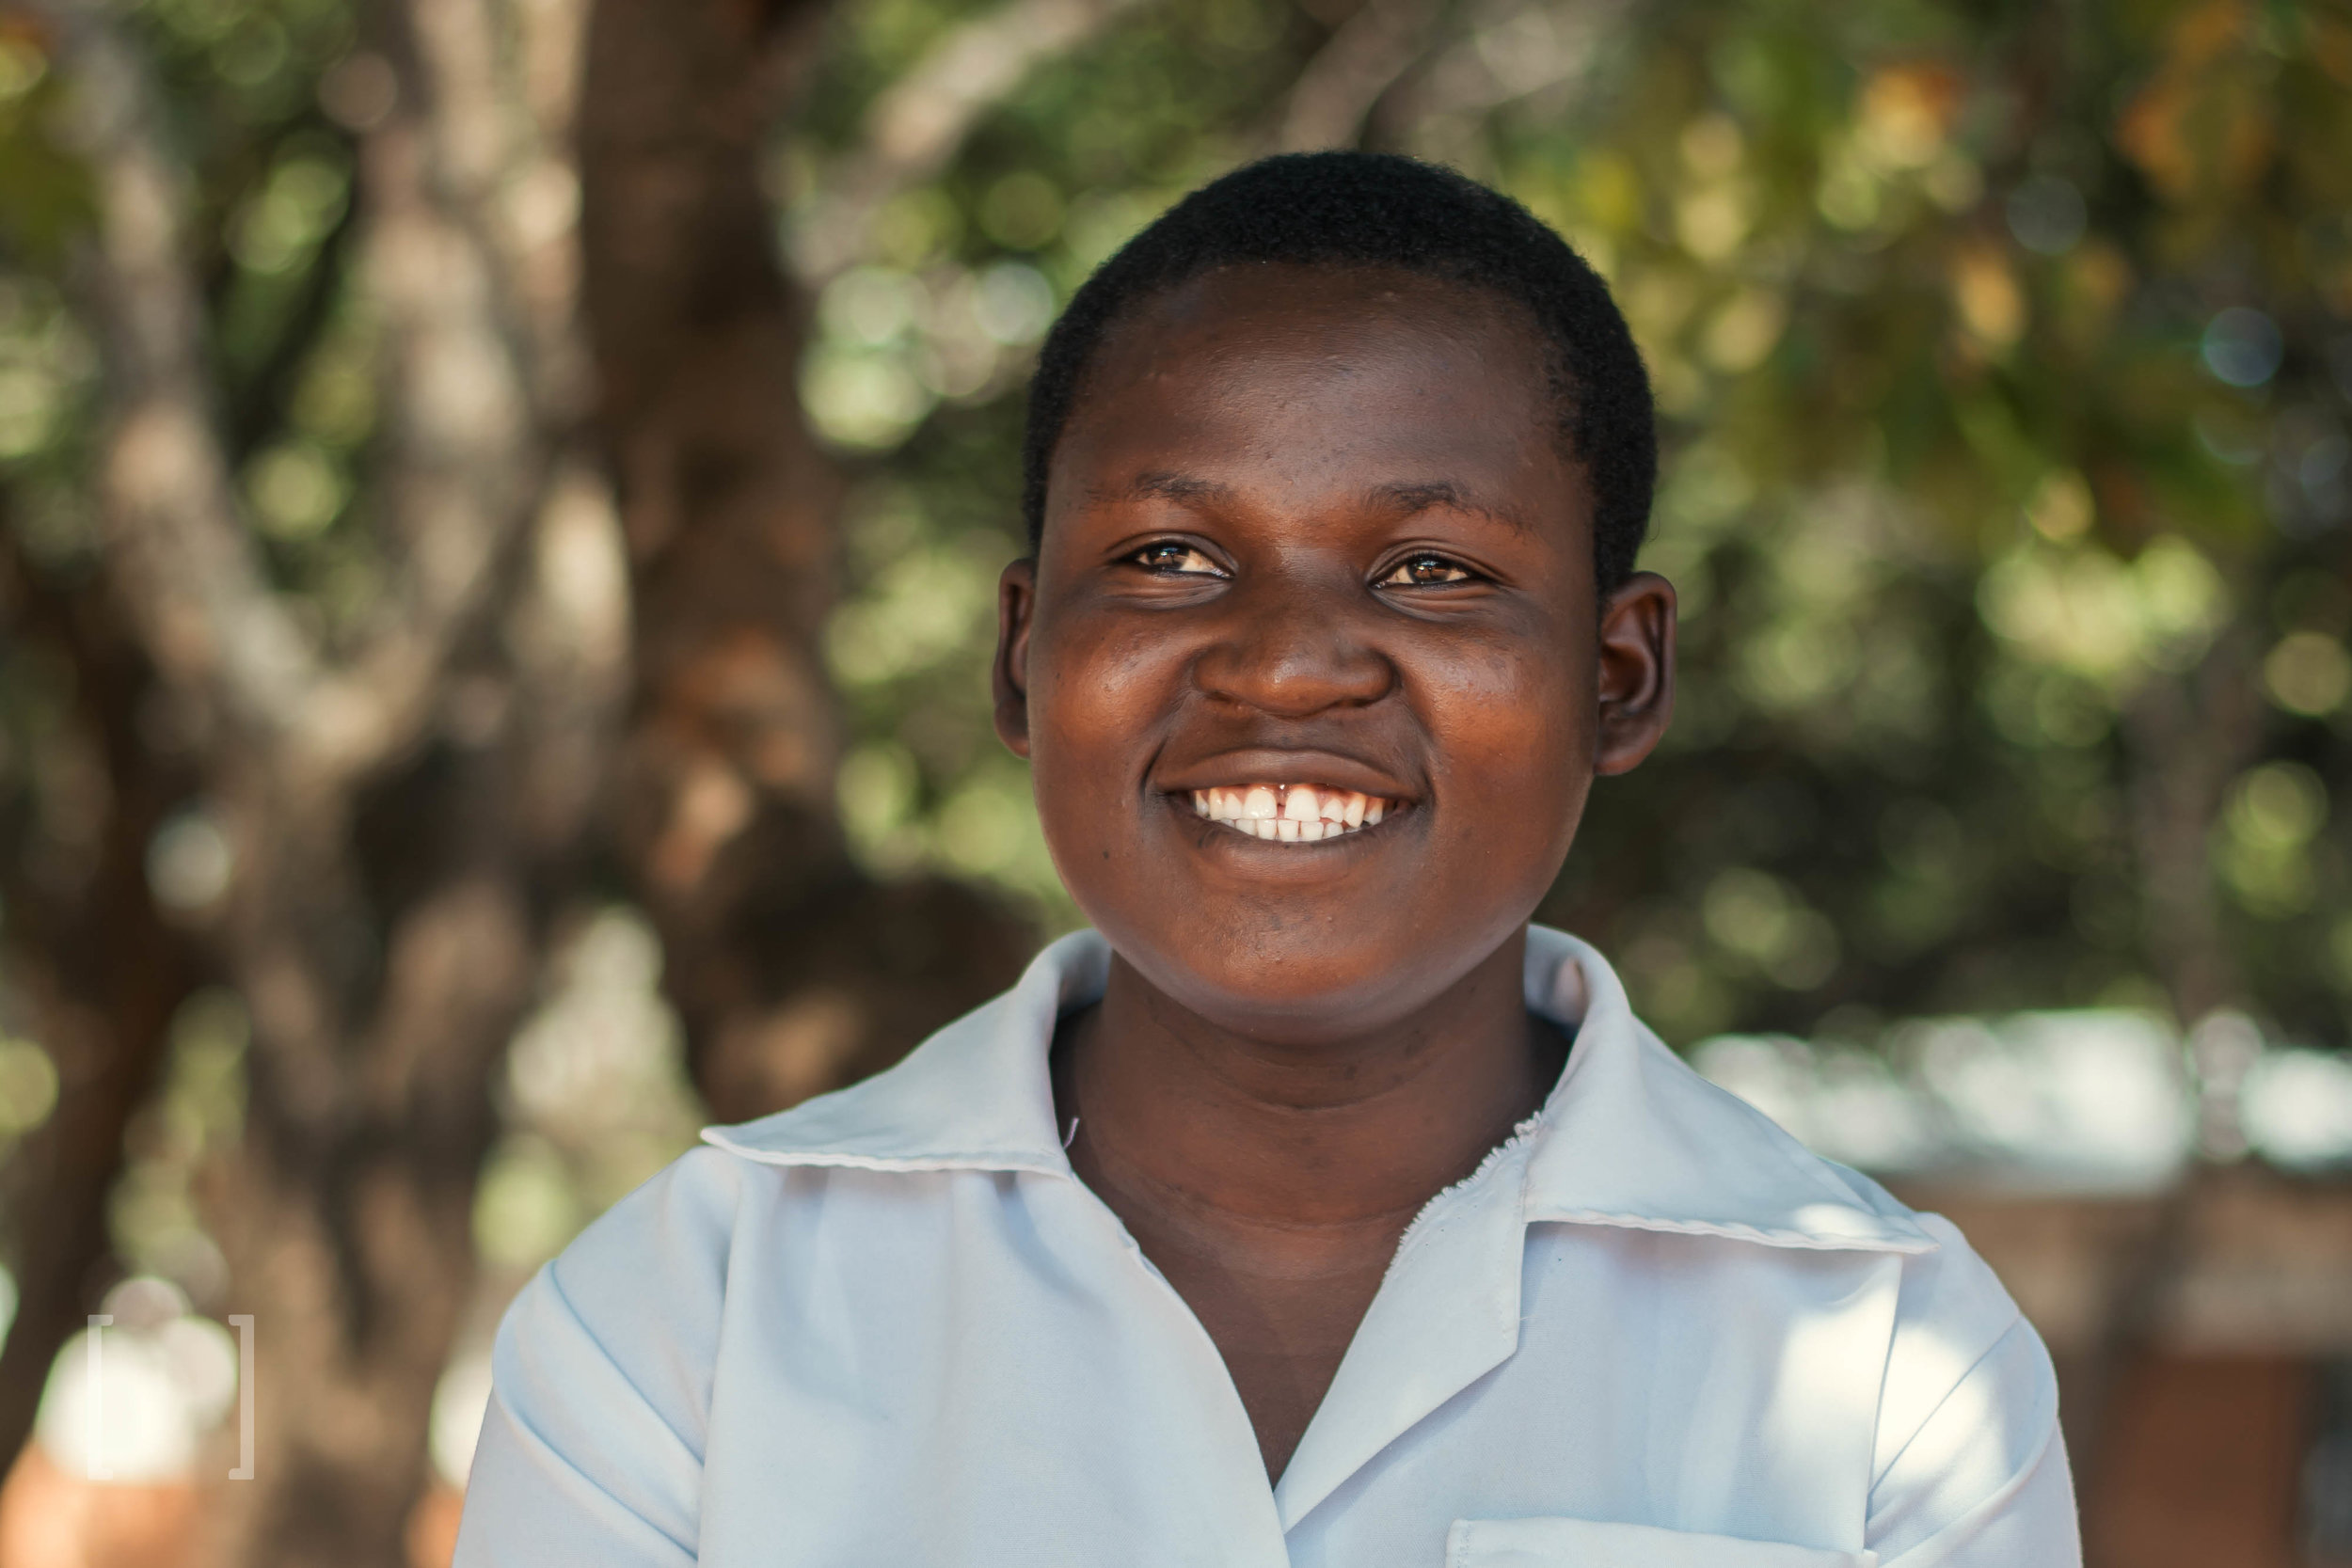 Rosemary - Rosemary is 14 years old. She does well in class and she would like to be a police officer one day. She faced many challenges but is now doing great! Click below to sponsor her.